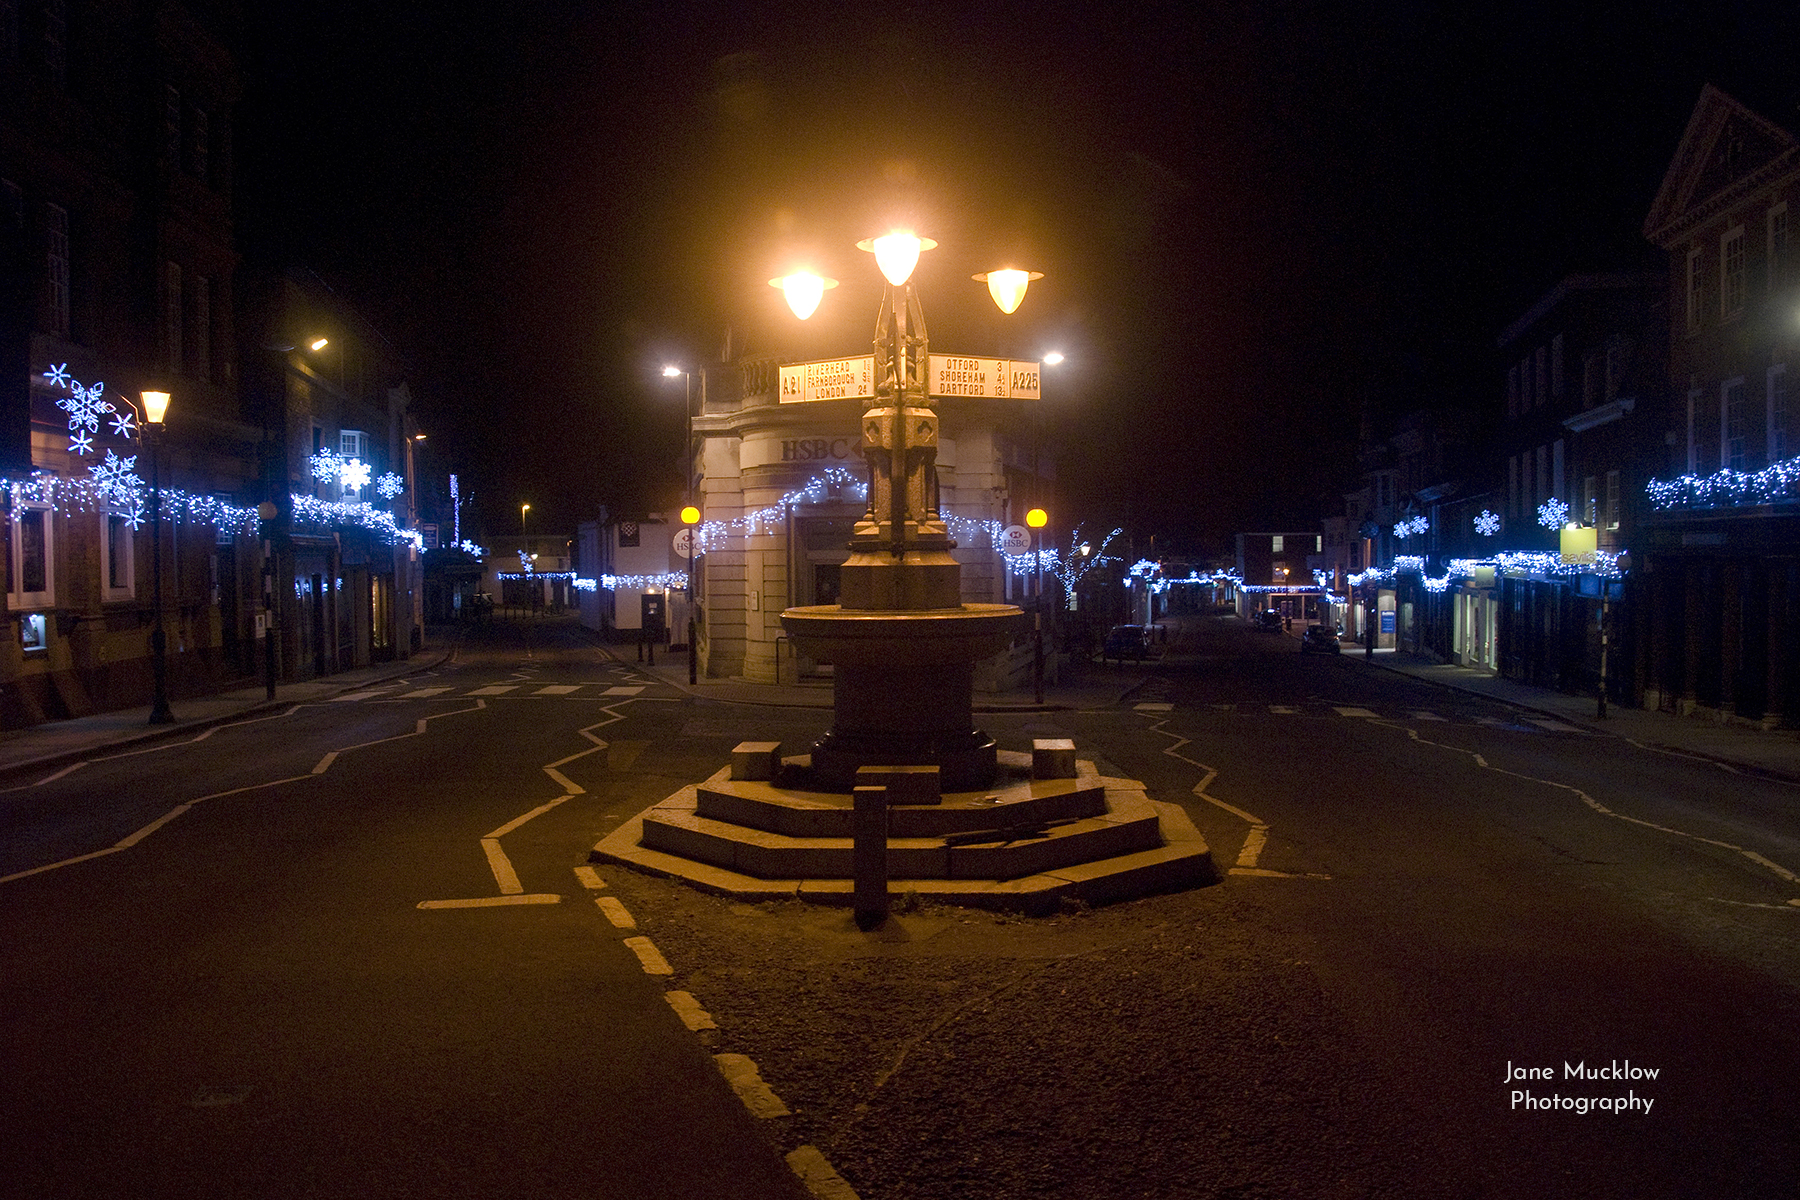 Photo by Jane Mucklow of the Christmas lights at the top of Sevenoaks high street, Kent.